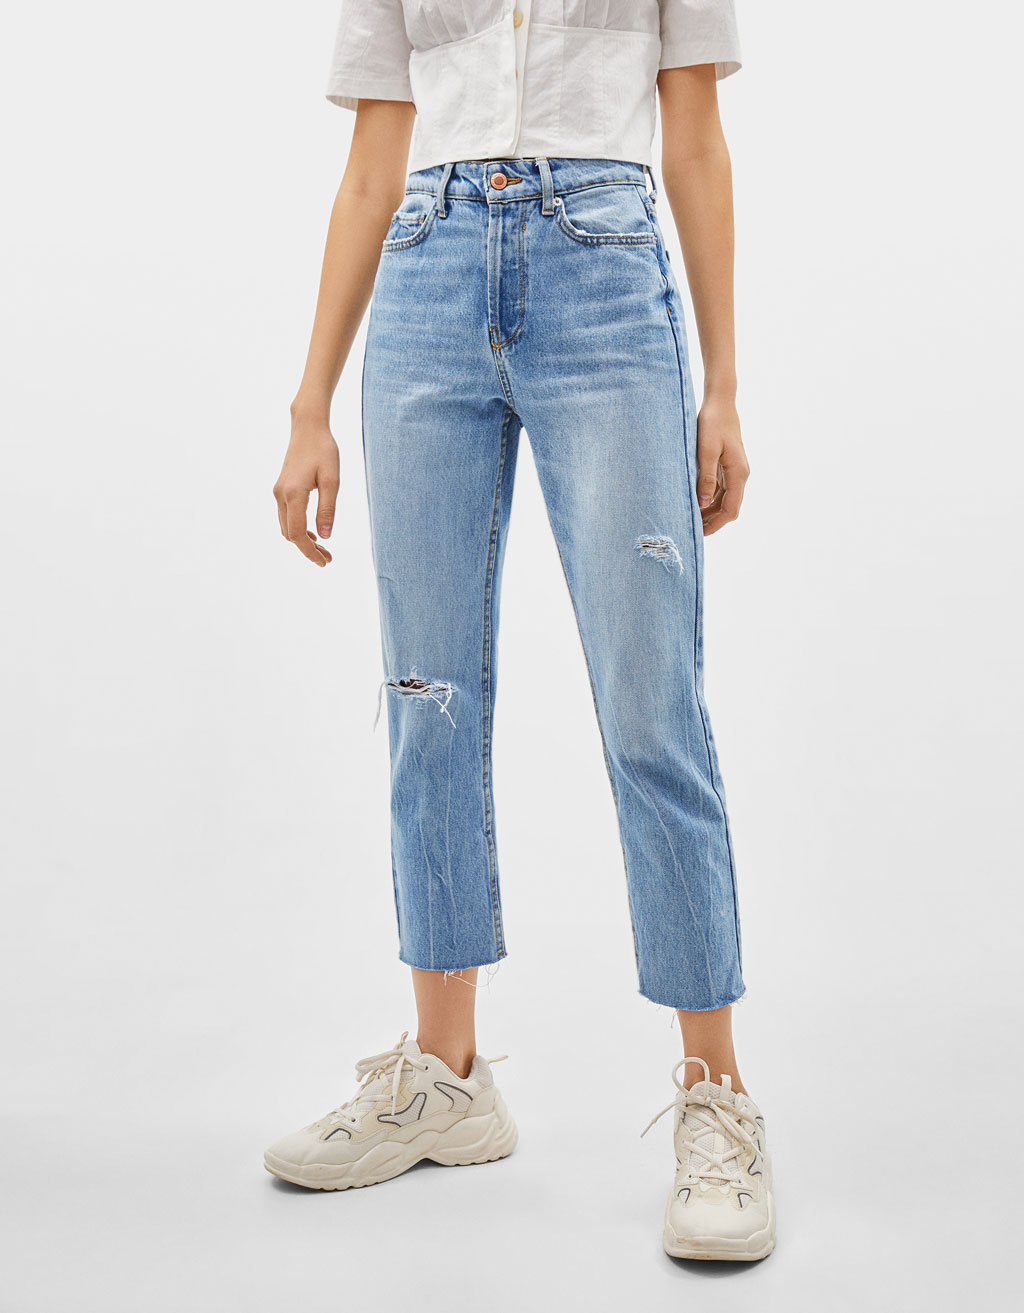 Jeans Straight Cropped High Waist